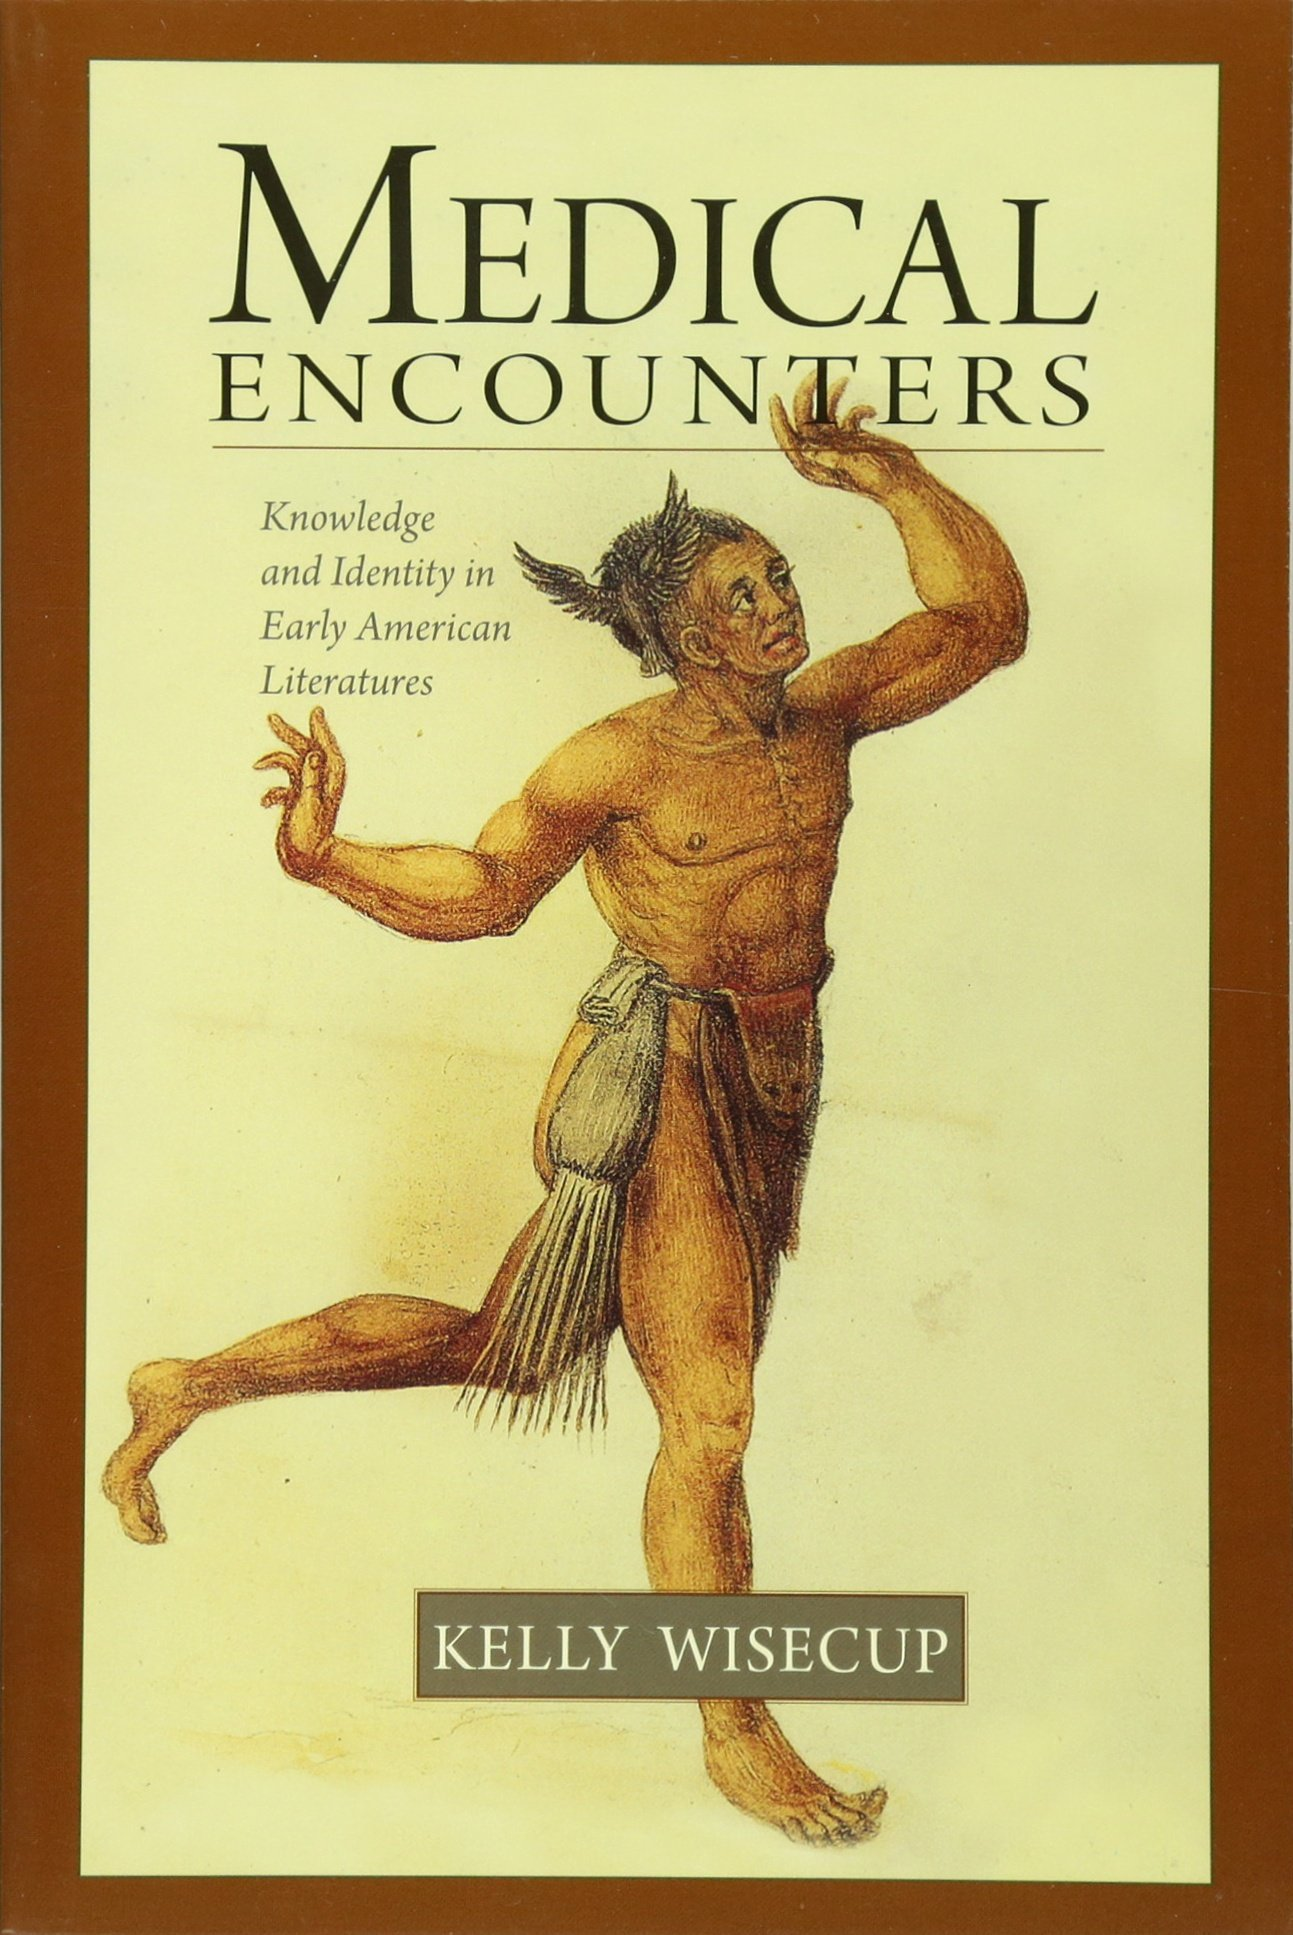 Medical Encounters: Knowledge and Identity in Early American Literatures